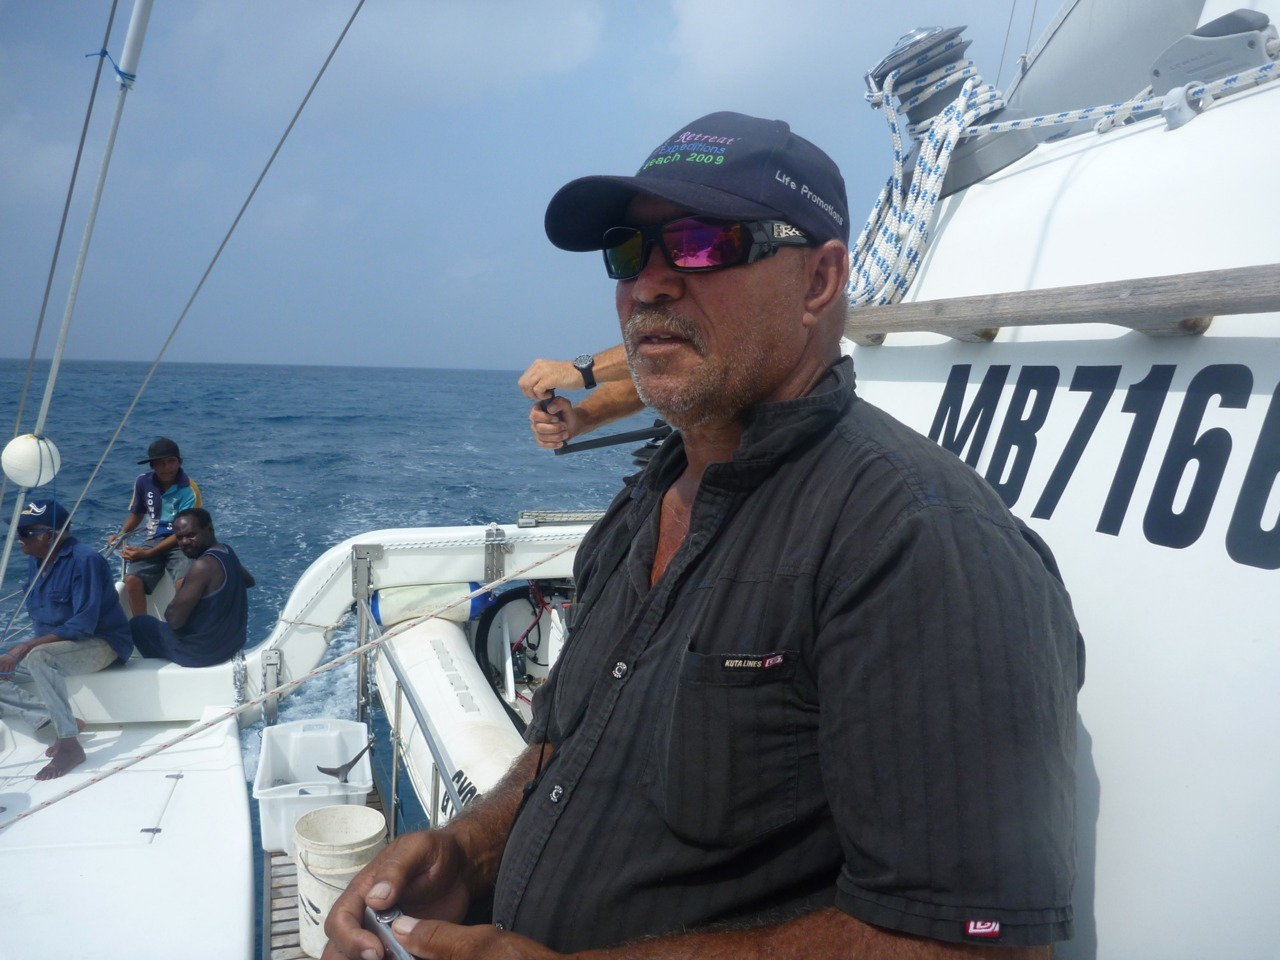 Des Bowen (Guugu Yimithirr Elder) from Hope Vale on board Pelican1 during 2010 project. Des is one of the key partners and developers of the program we have run since 2004. #CapeYork #HopeVale #SeaCountry